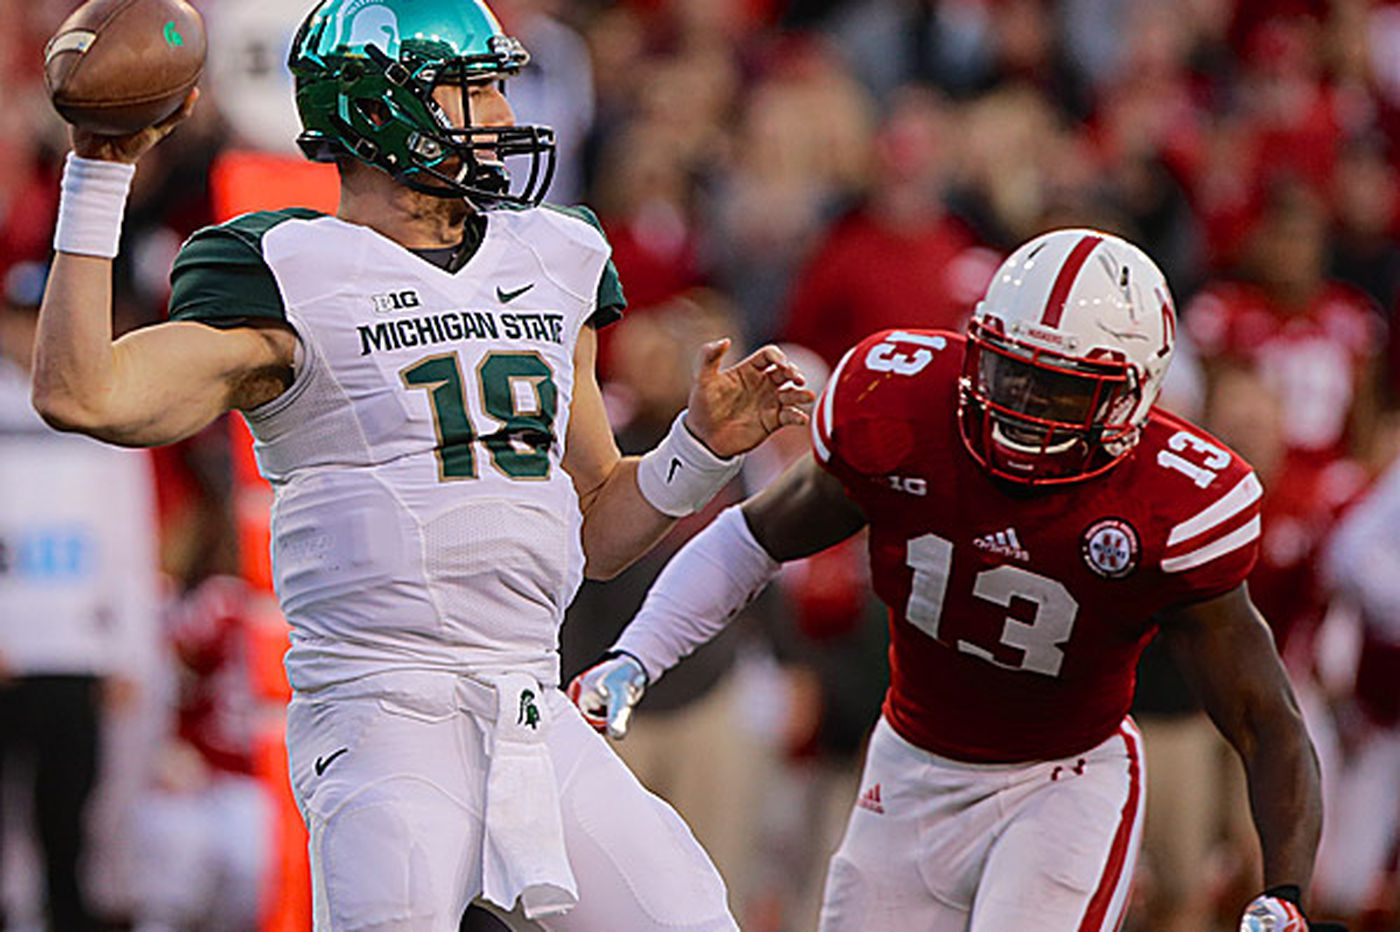 Frankford's Anderson settles into role at Nebraska